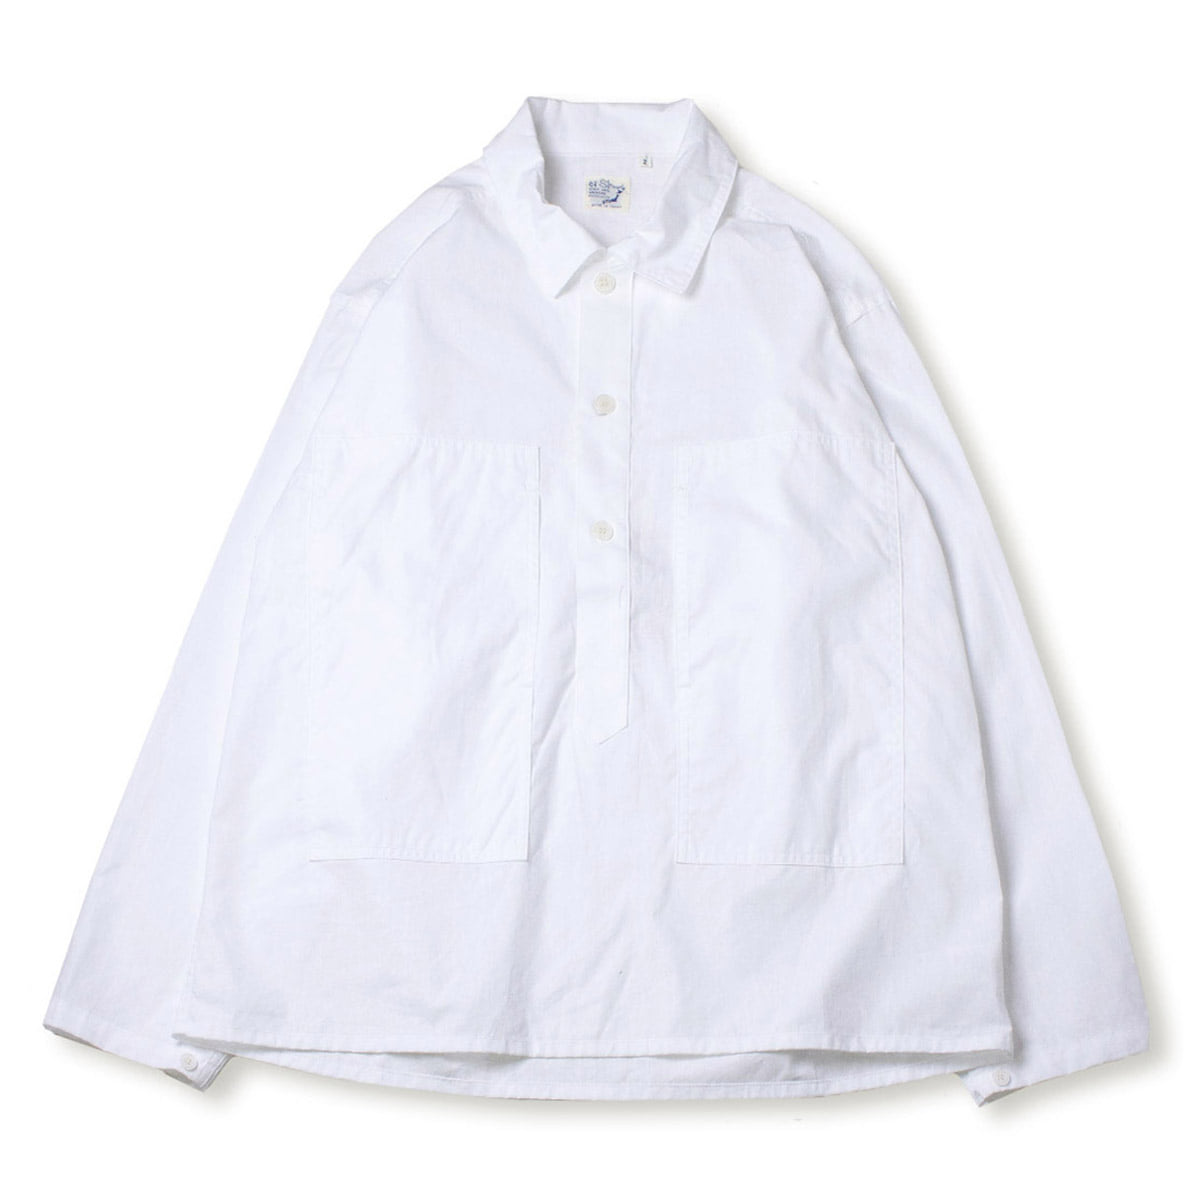 [ORSLOW] PW PULLOVER SHIIRT JACKET 'WHITE'